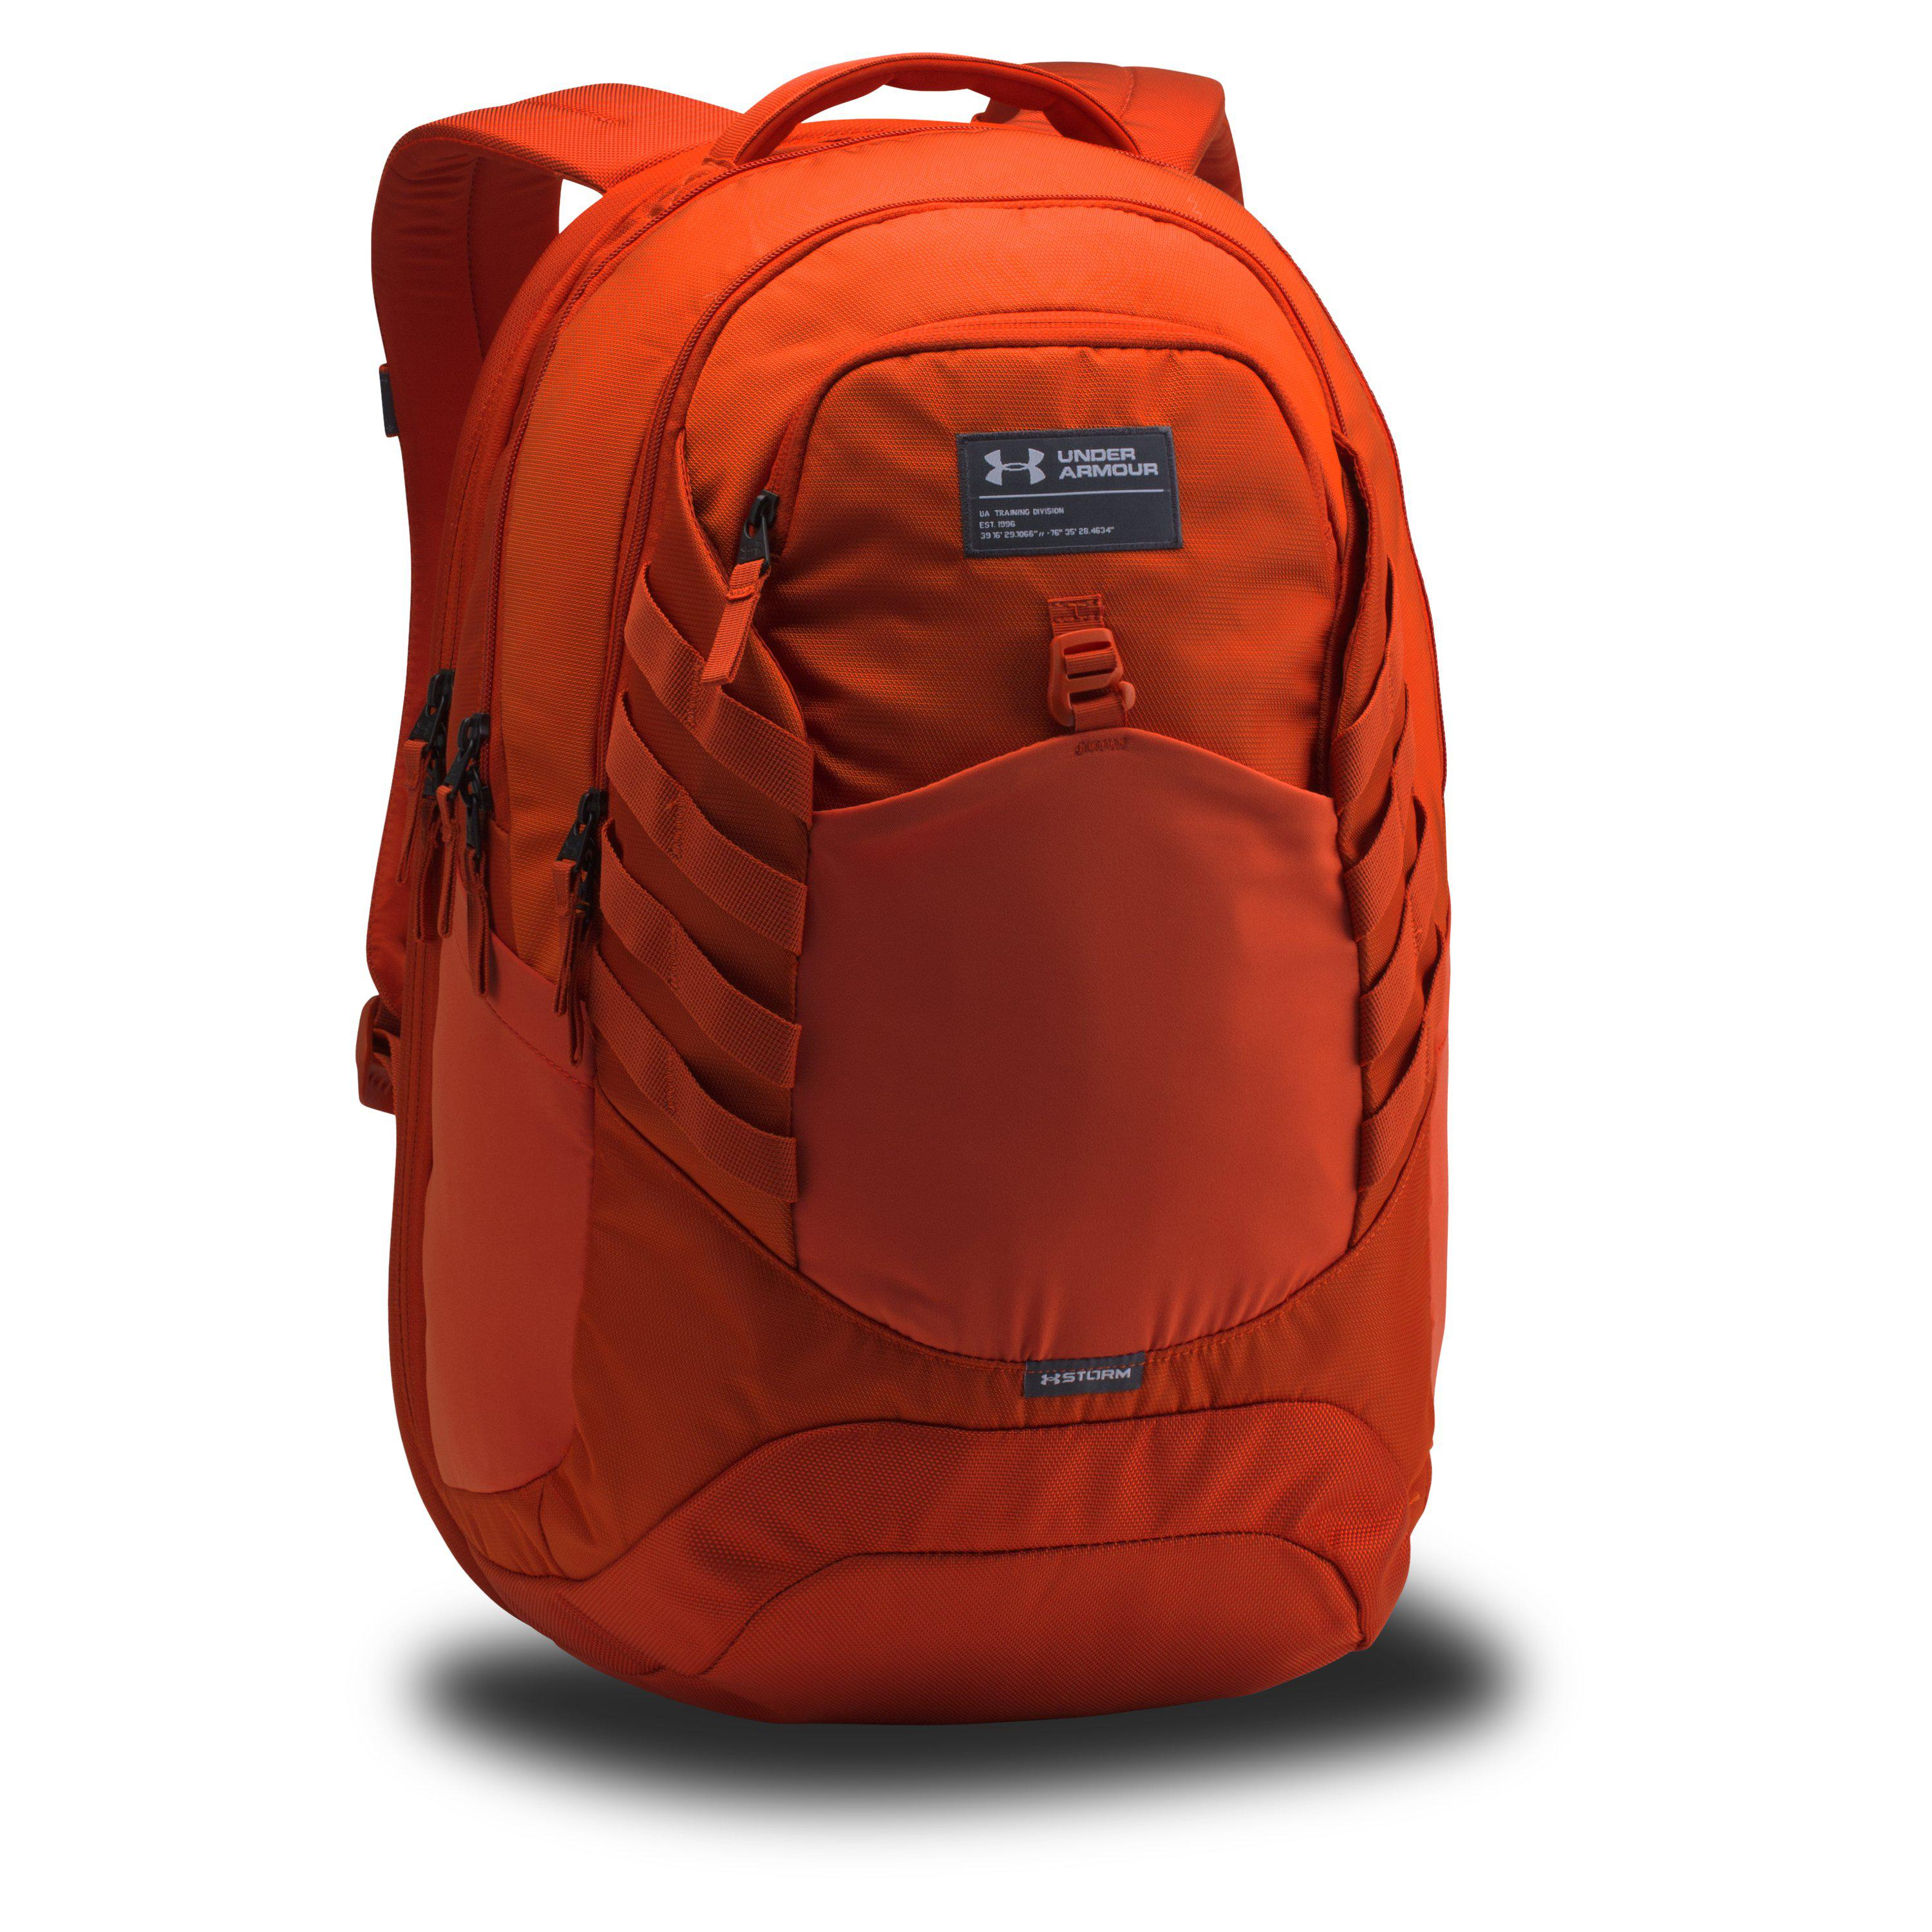 3dc16fa171d7 Lyst under armour mens ua hudson backpack in red for men jpg 3000x3000 Maroon  under armour